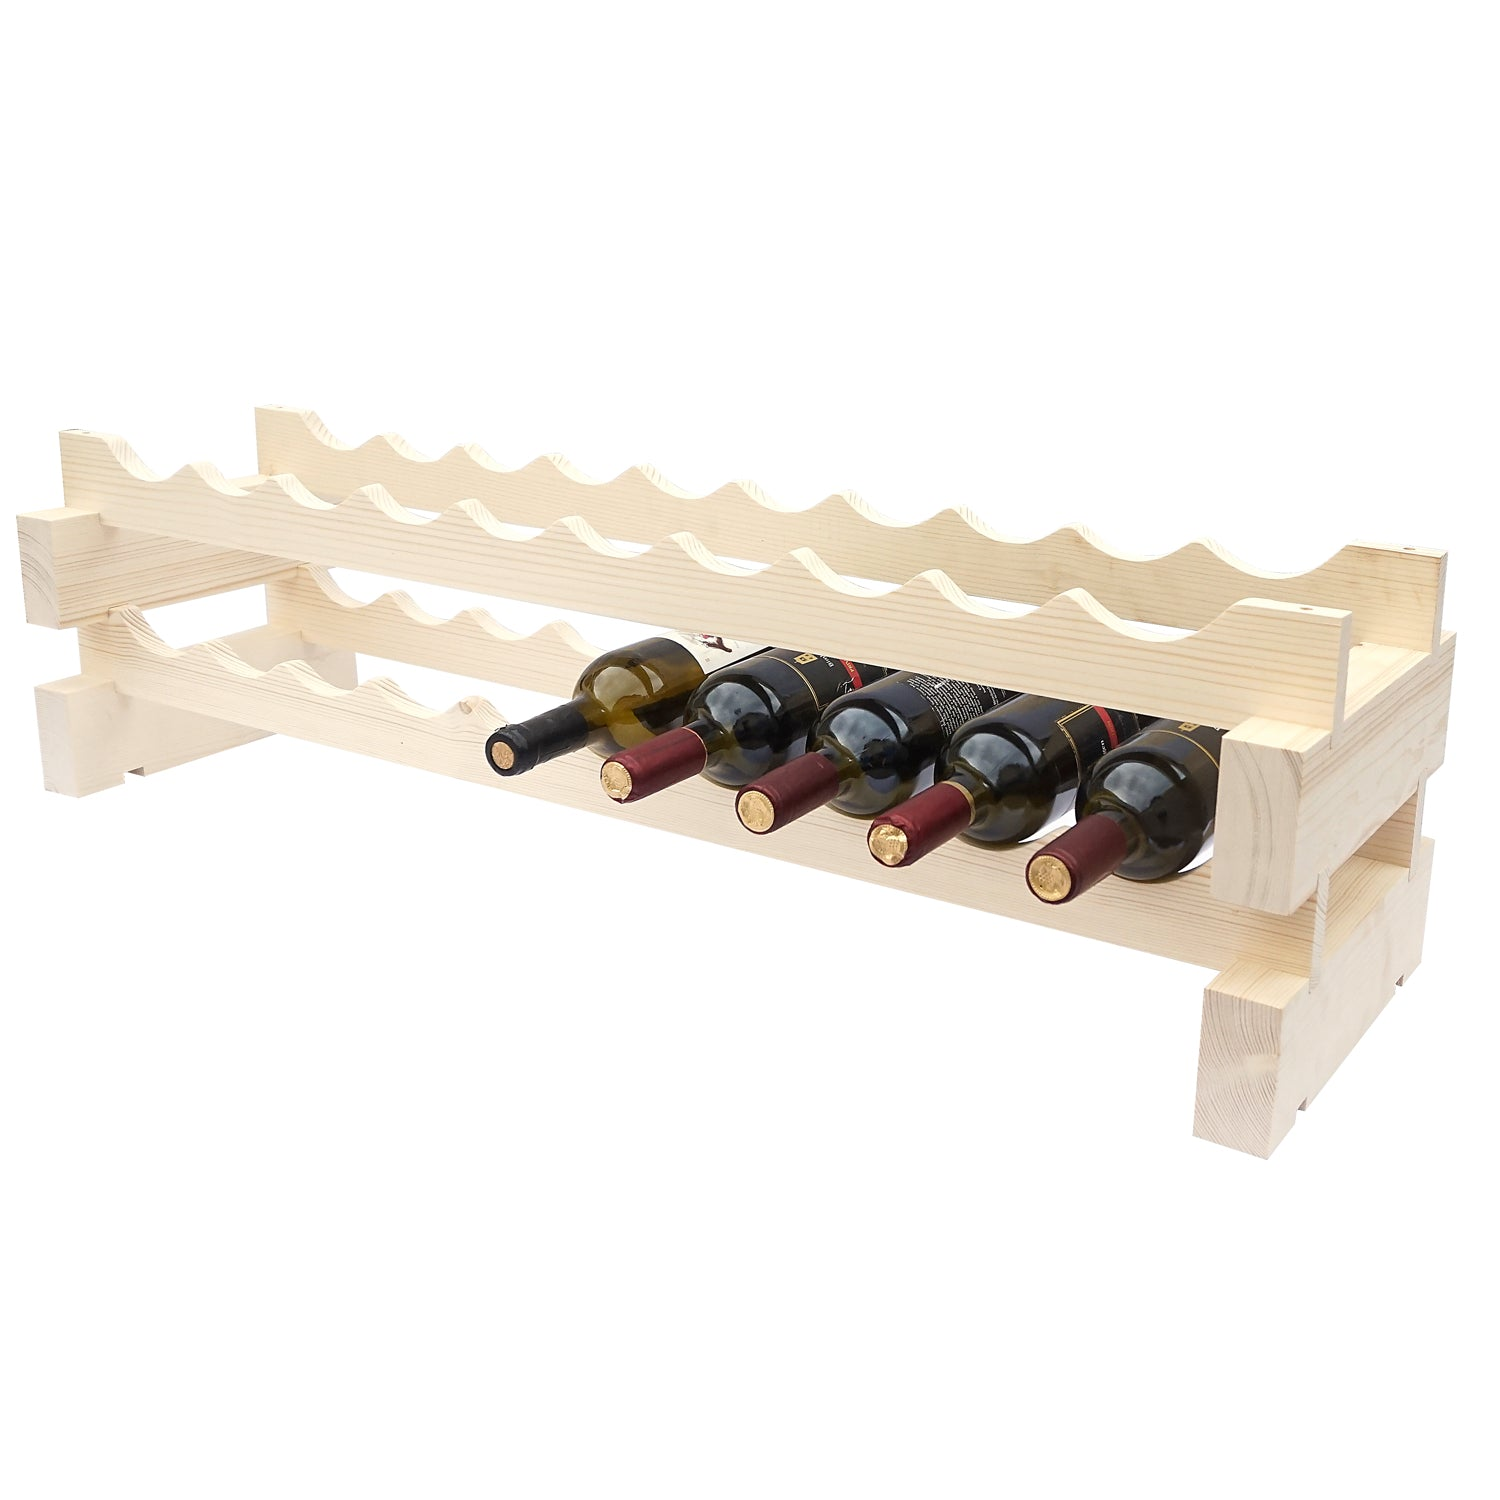 20 Bottle Modular Wine Rack